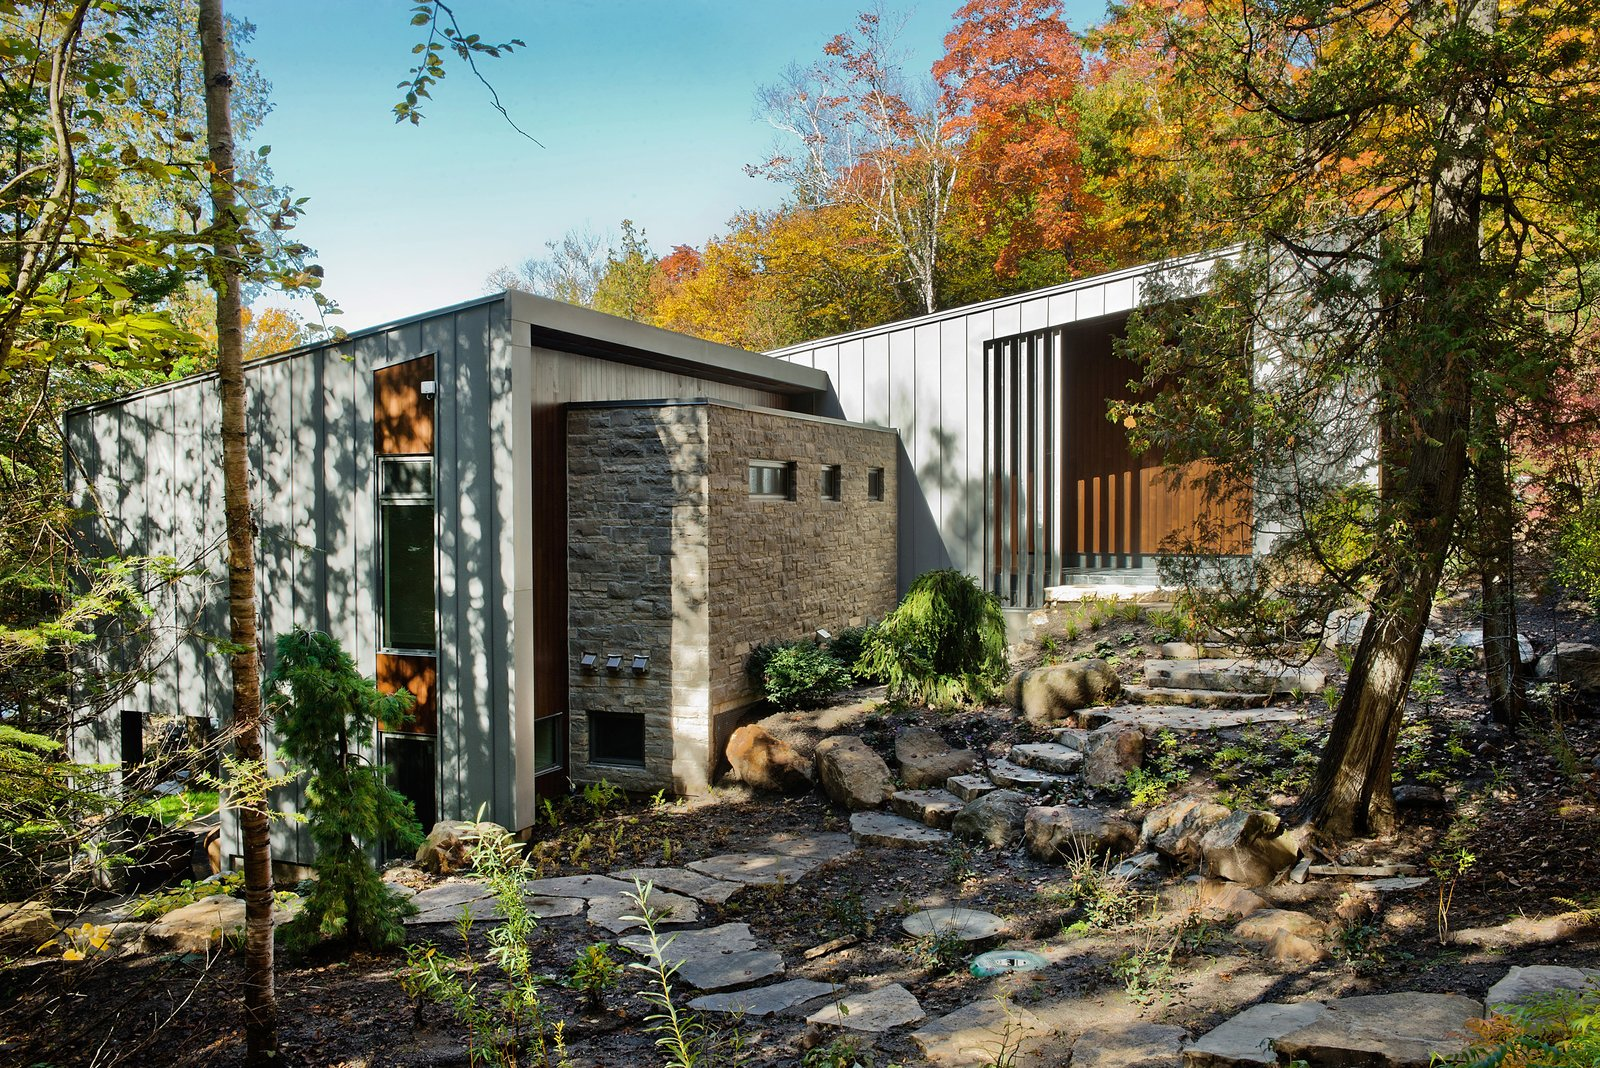 """The site was beautiful as it is,"" architect Eric Tremblay said, and he wanted to build a home that had the least impact on the terrain as possible. The lake can be seen on either side of the house, and natural materials—like the Eramosa limestone coating on the exterior—were a priority during construction."